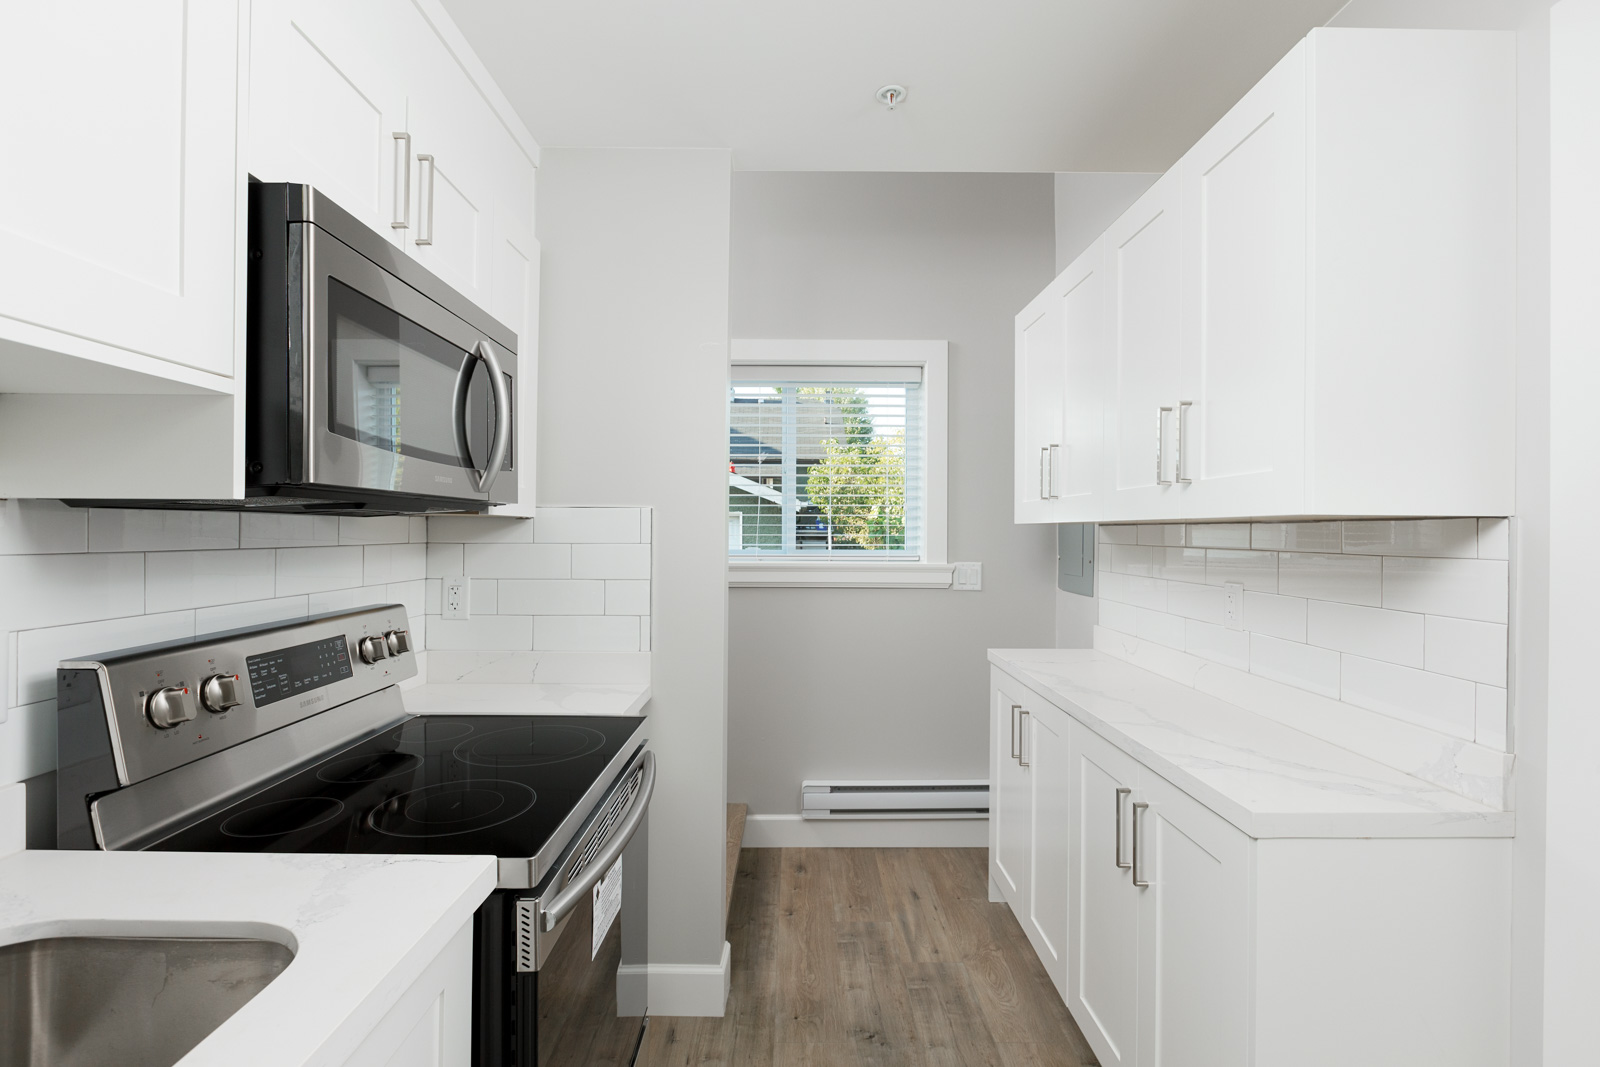 Kitchen of Vancouver unfurnished rental with stainless steel appliances.